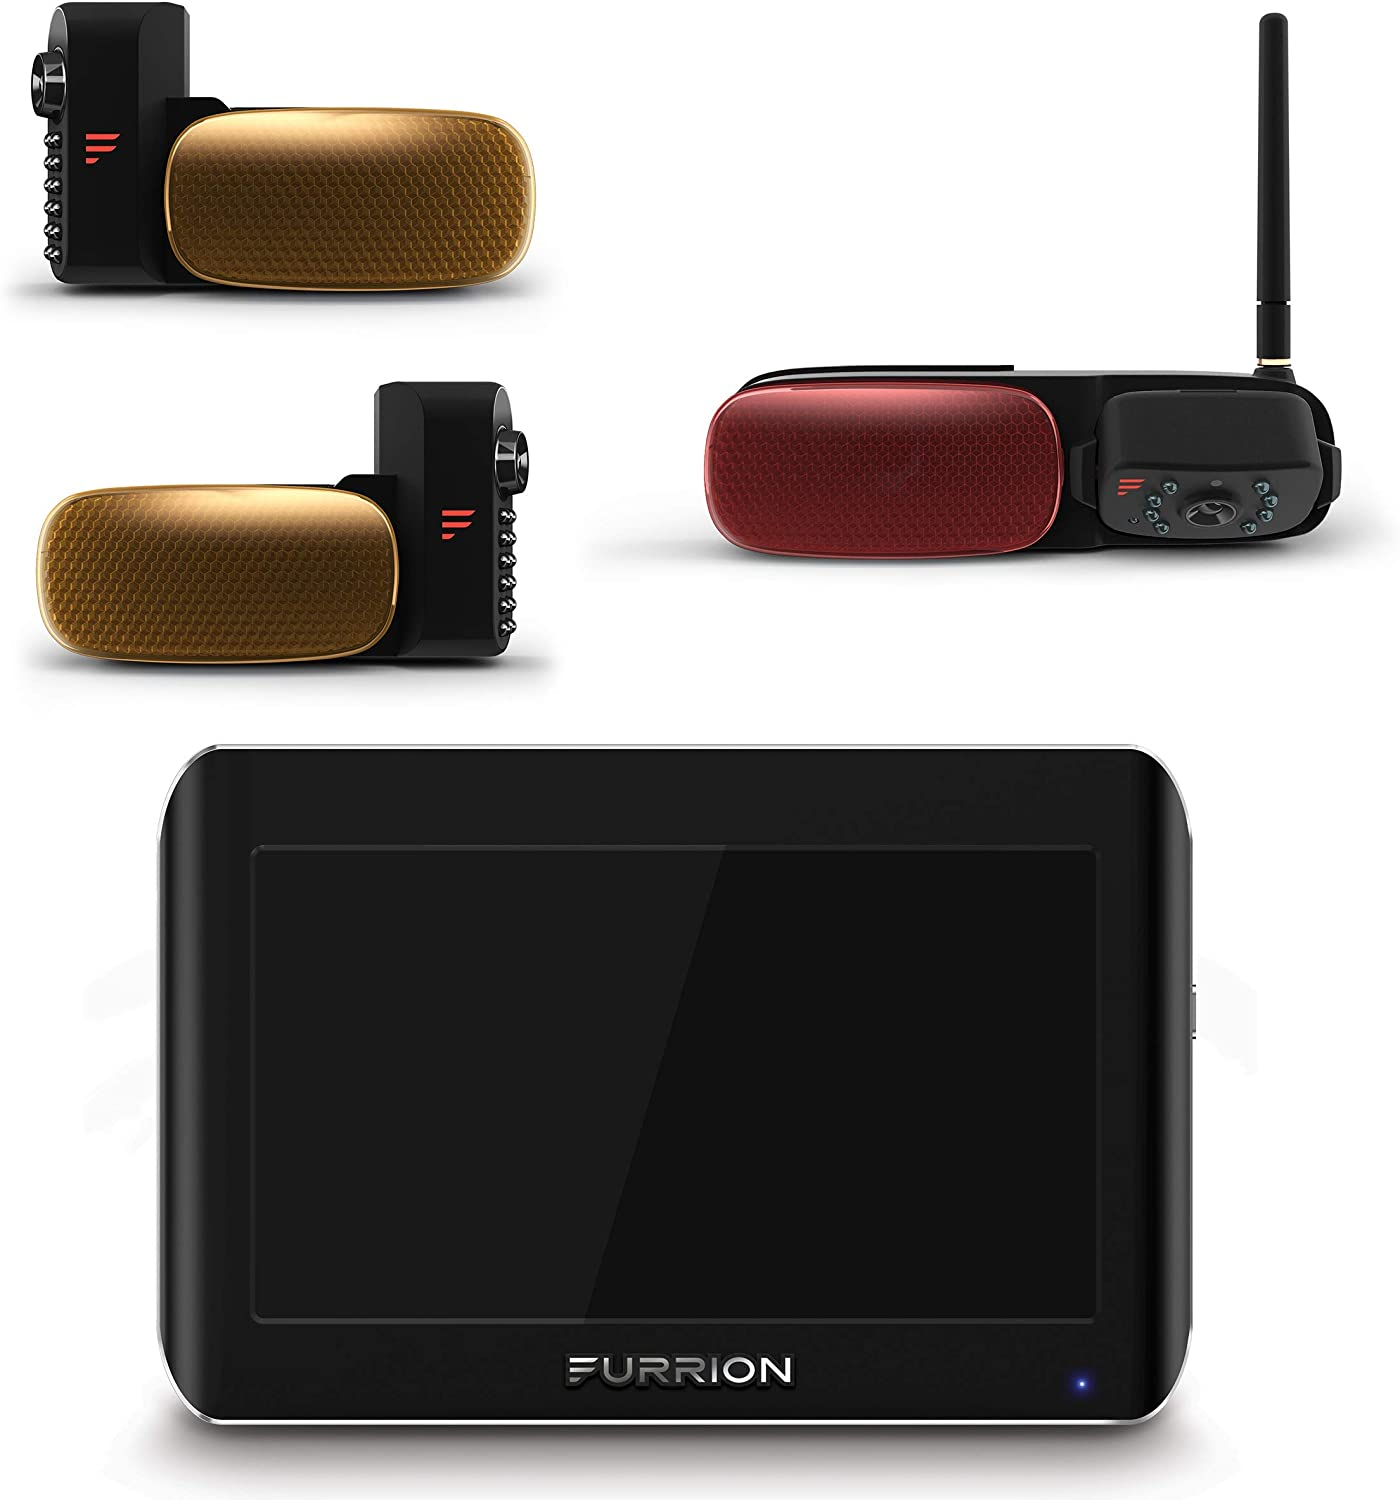 Furrion Vision S (FOS05TAED)